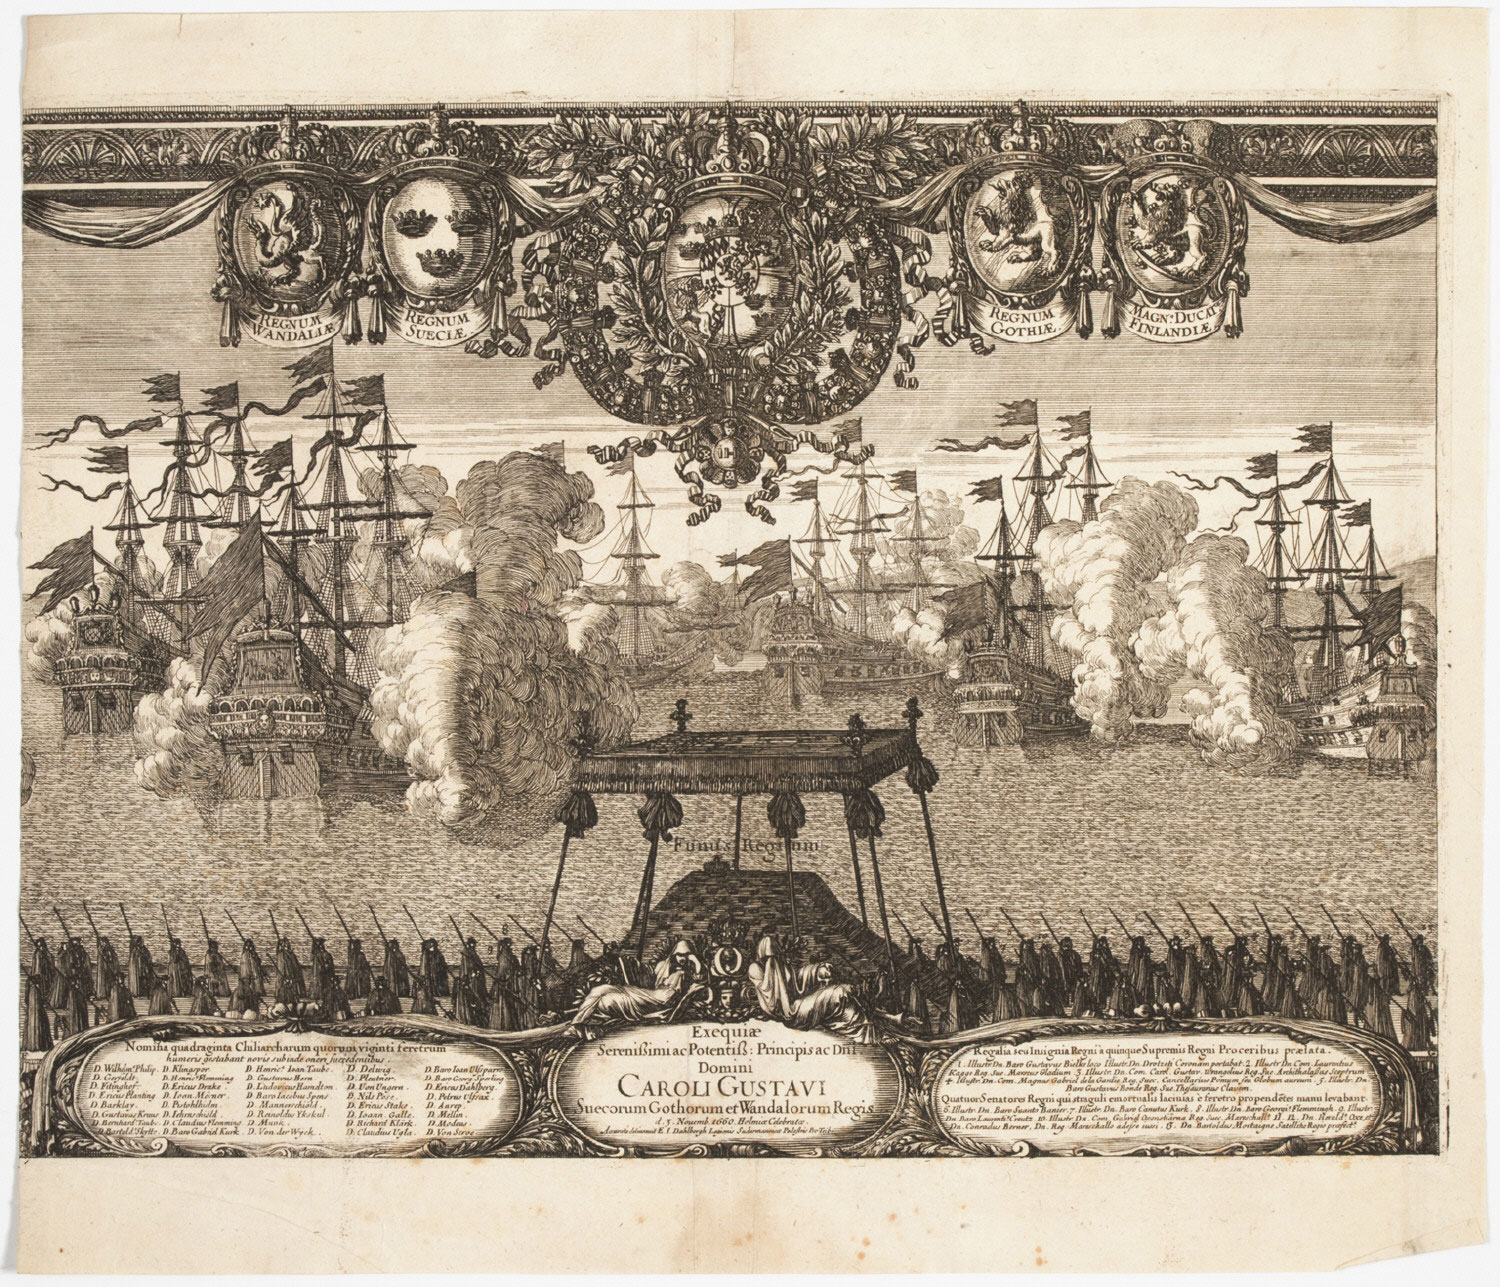 Central Section with the Funeral in the Funeral Procession of King Carl X Gustav of Sweden, Held in Stockholm on November 3, 1660